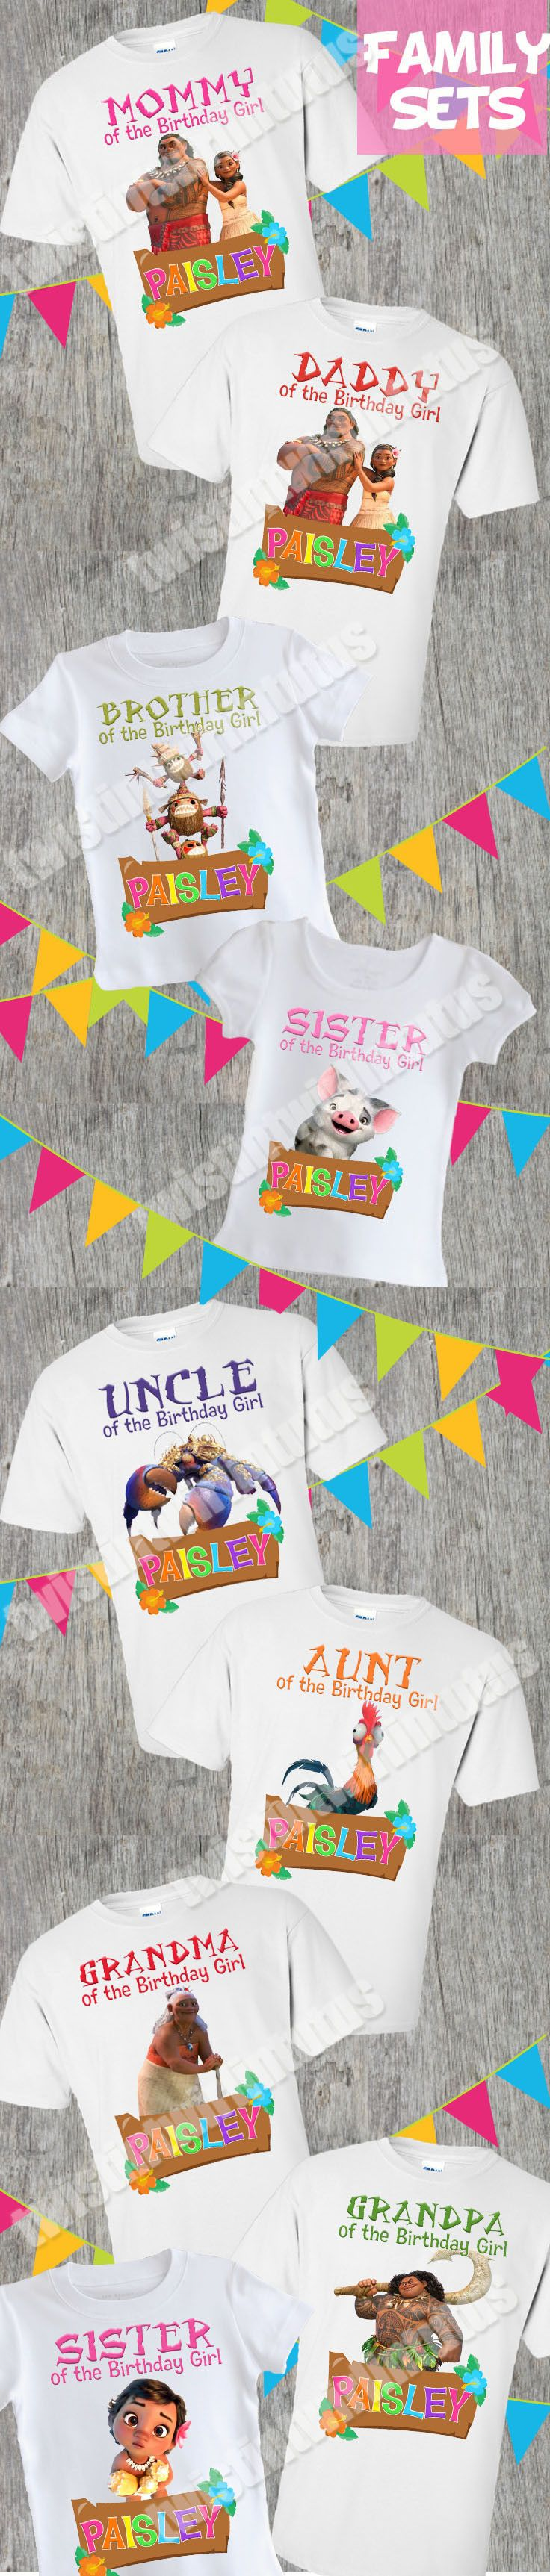 Moana Family Birthday Shirts | Moana Birthday Shirt | Moana Birthday Party Ideas | Moana Family Shirts | Birthday Ideas for Girls | Twistin Twirlin Tutus #moanabirthday